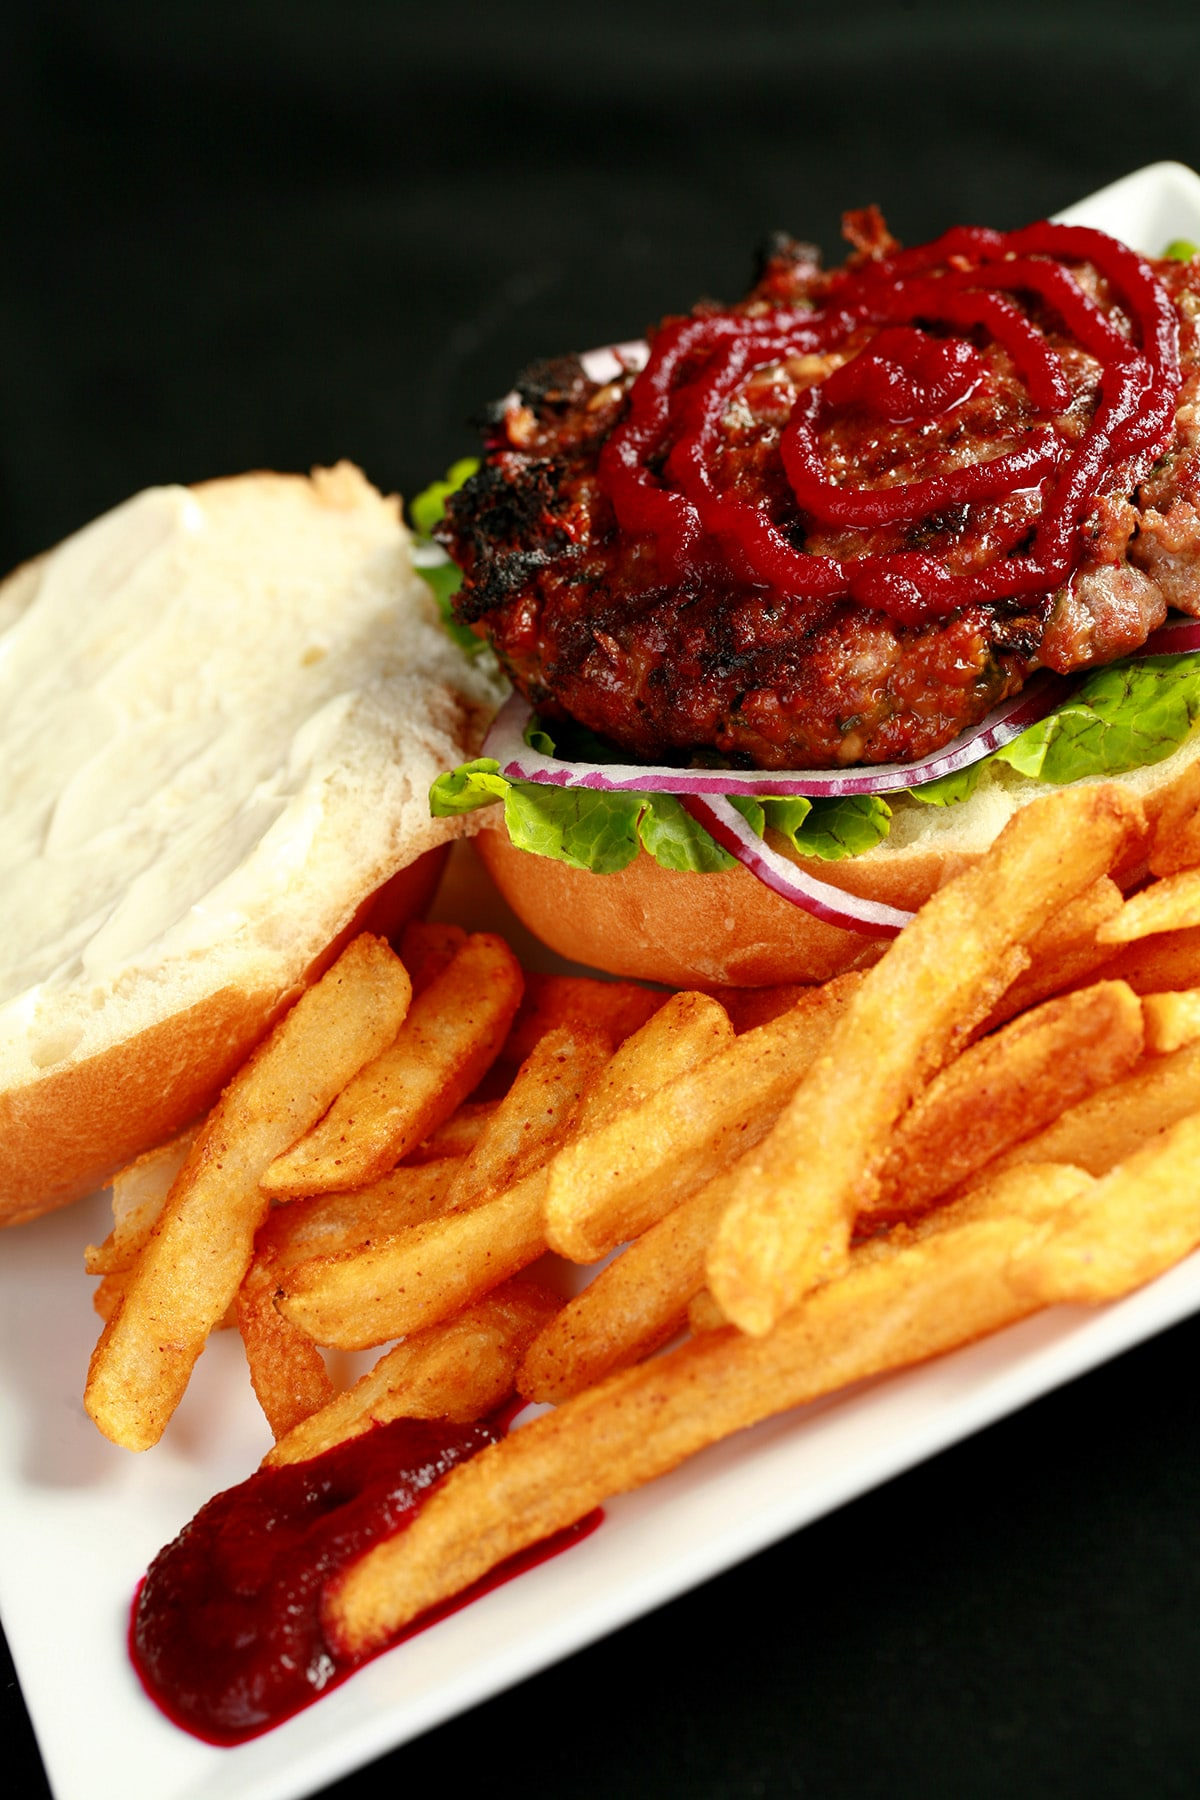 An open faced burger on a plate with fries. The burger has a large ruby red swirl of beet ketchup on it.